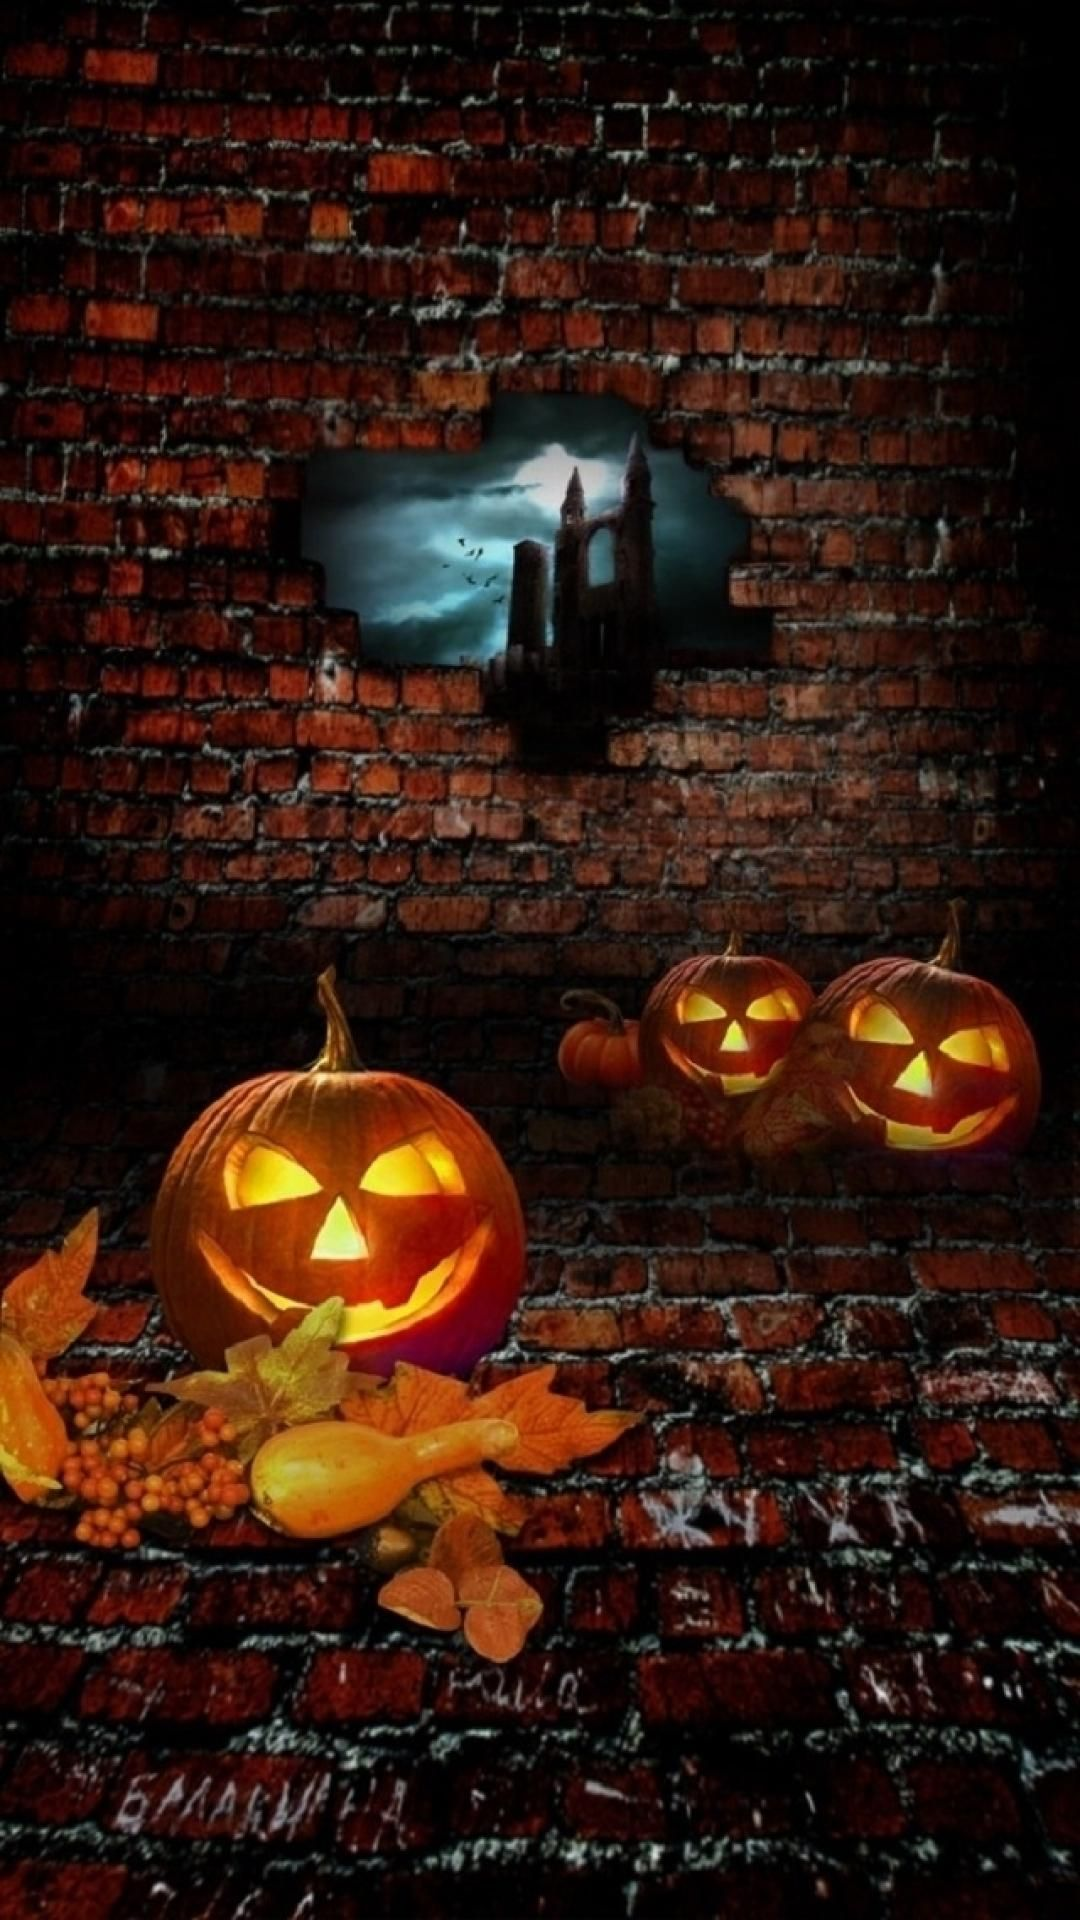 Iphone 6 Retina Wallpaper Halloween Wallpaper Iphone Halloween Wallpaper Retina Wallpaper